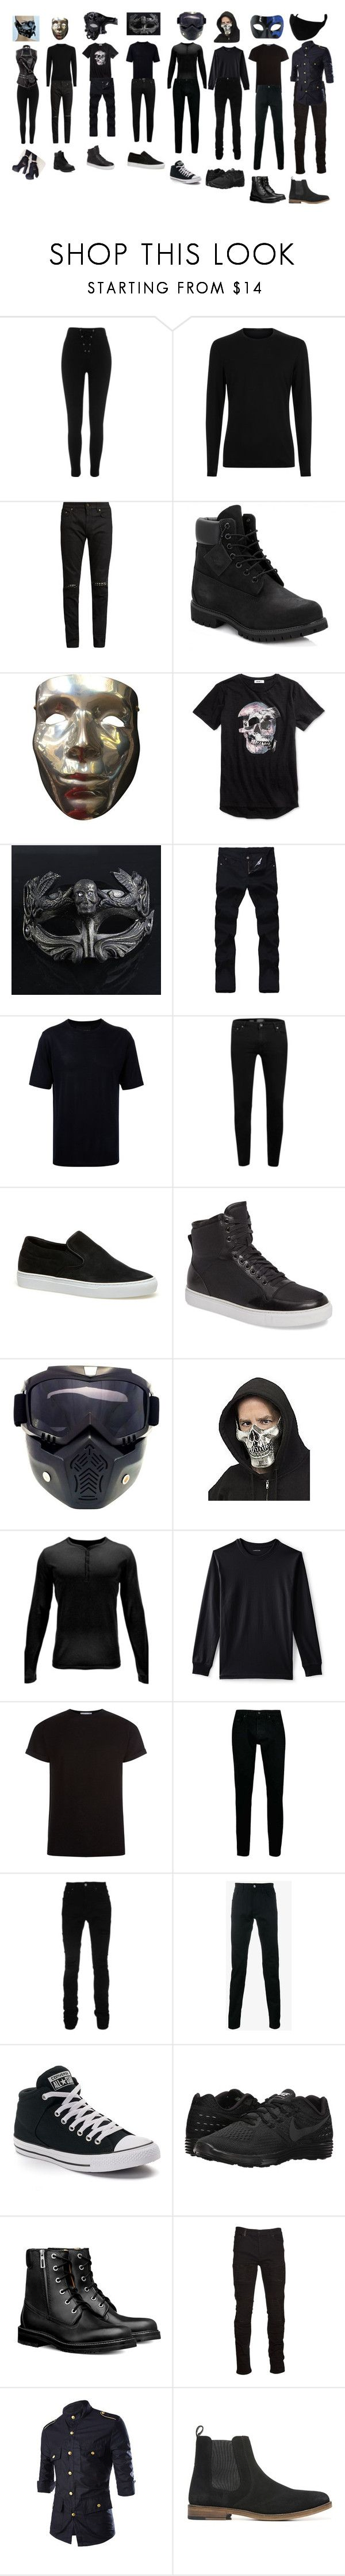 """""""My Marvel team called The Maskerades"""" by btsloveforlife ❤ liked on Polyvore featuring River Island, Yves Saint Laurent, Timberland, William Rast, Estnation, Topman, Lacoste, English Laundry, Masquerade and Spyder"""